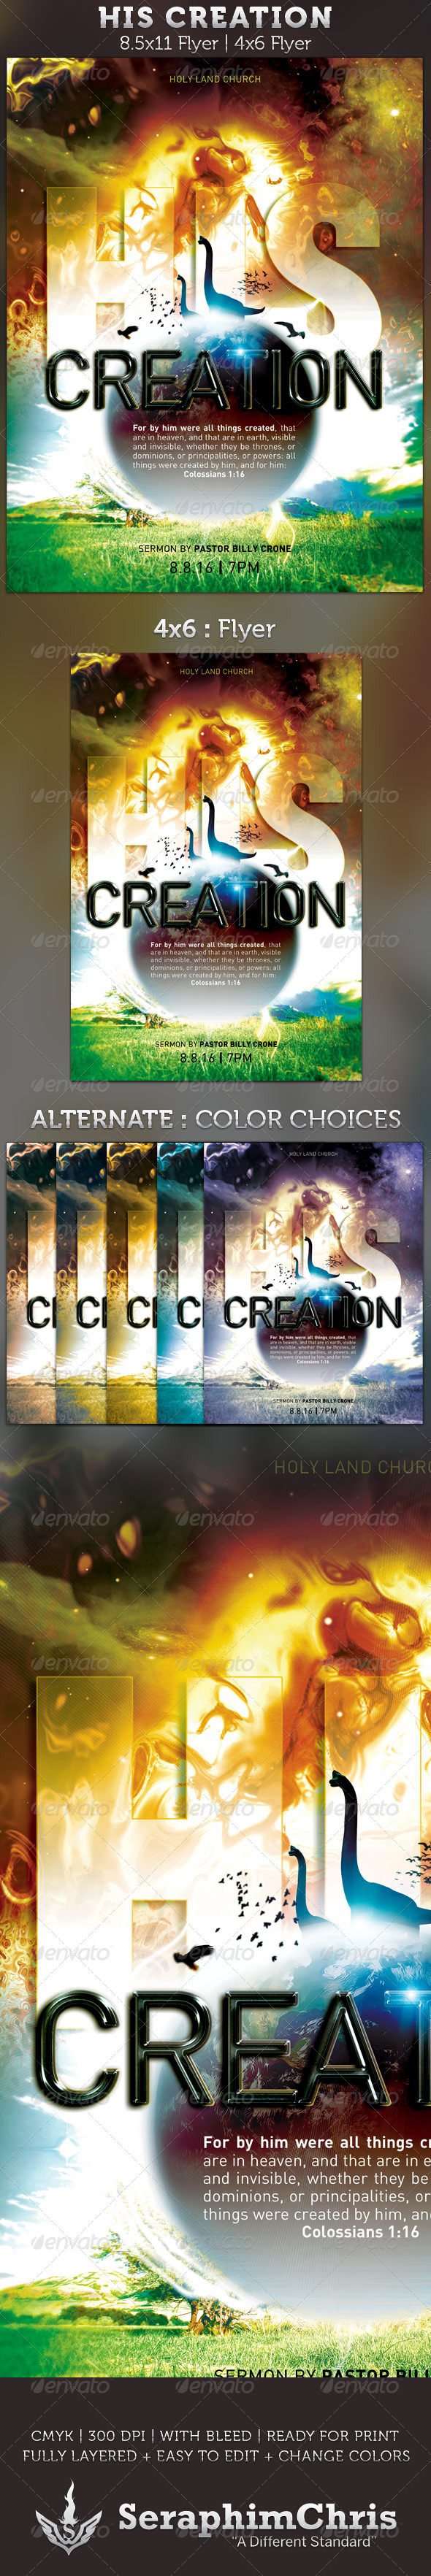 GraphicRiver His Creation Church Flyer template 2746426